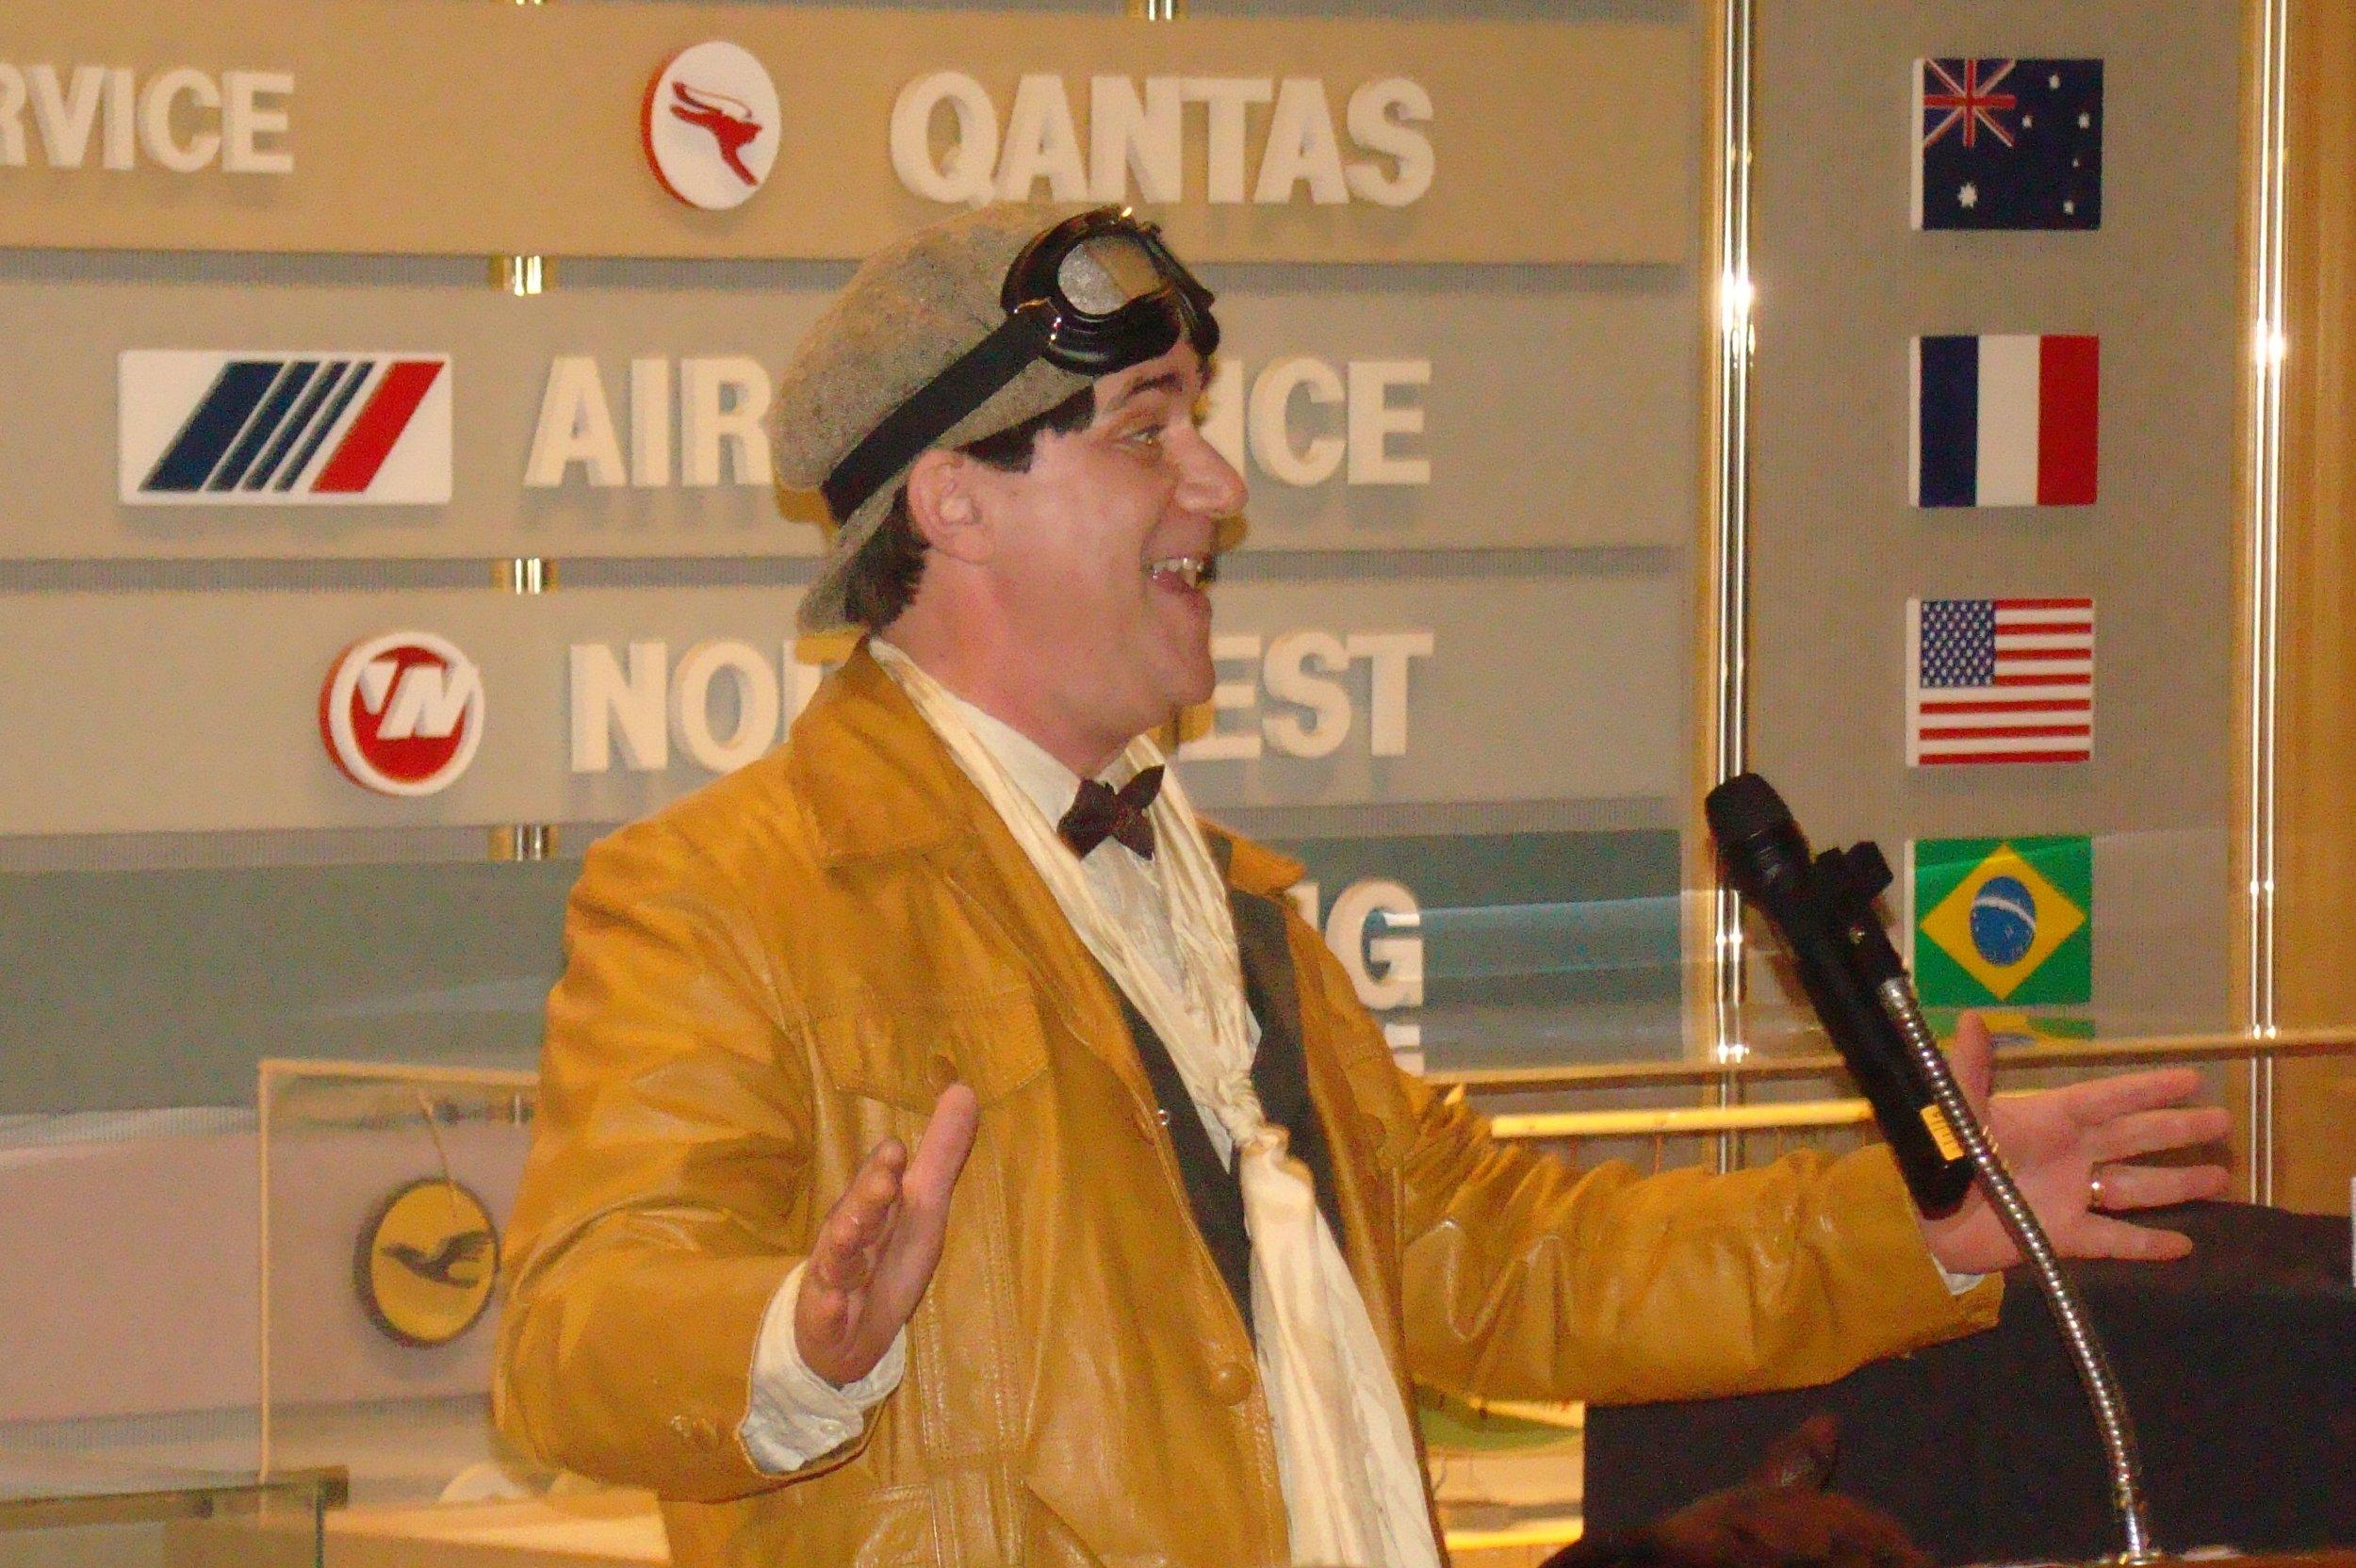 Tony Jannus - a. k. a., Michael Norton - @ First Night-First Flight Presentation in SPMOH, 31 Dec '13.JPG